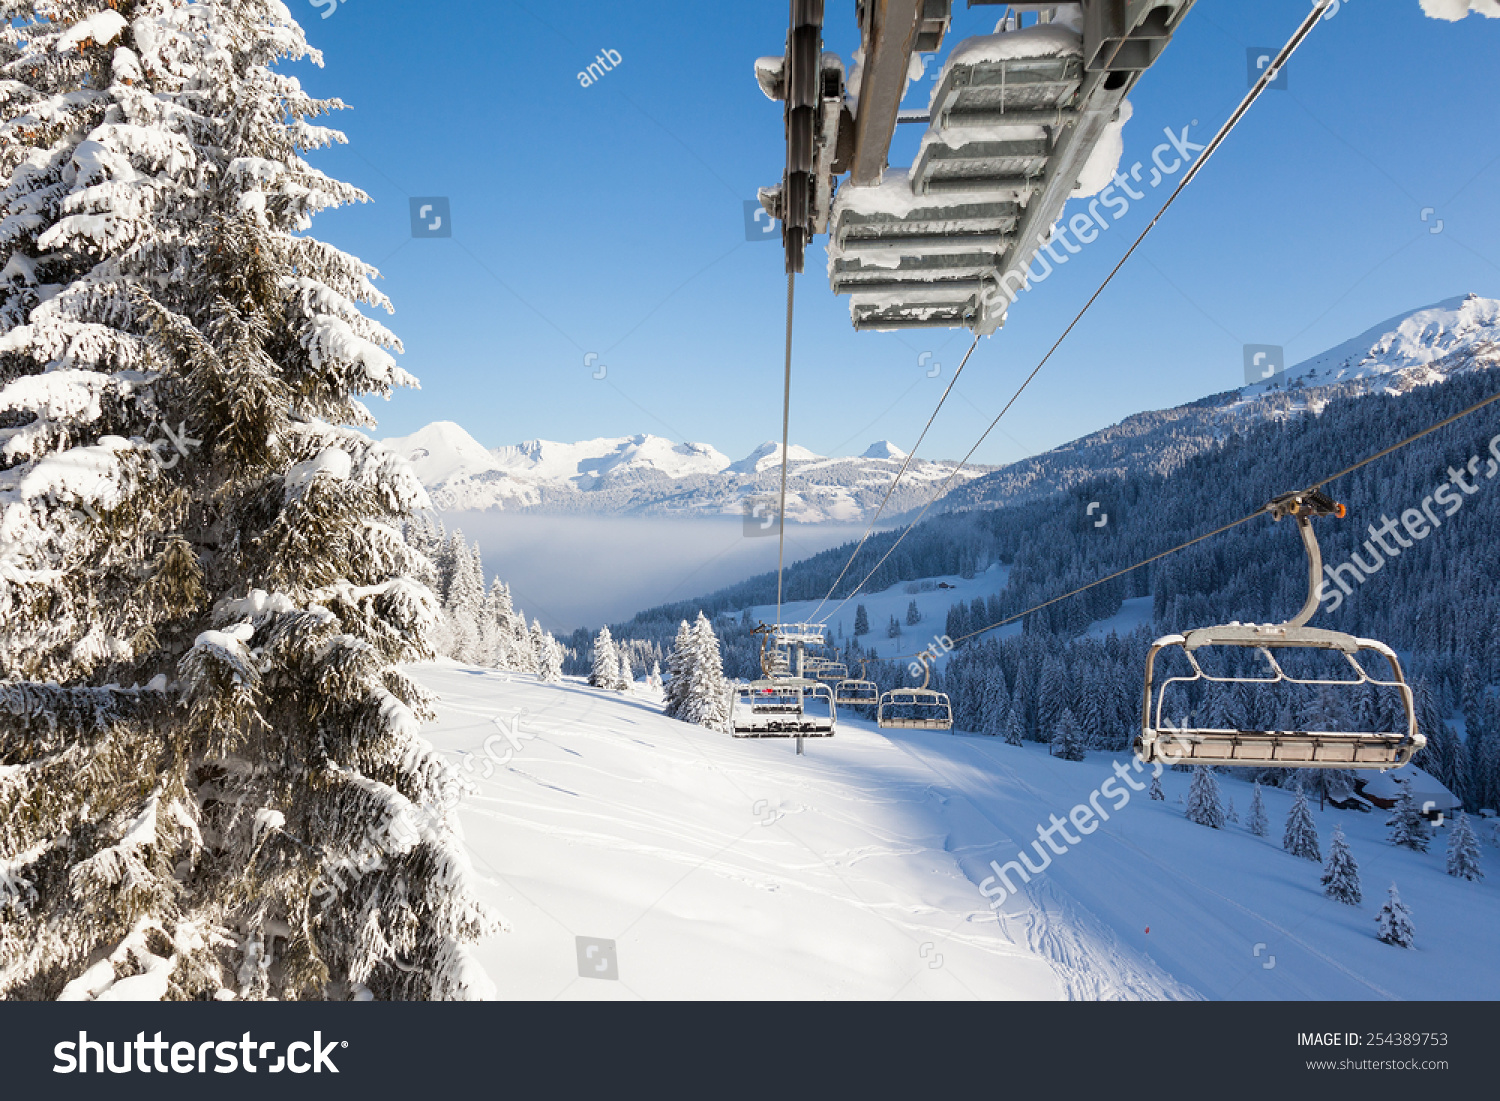 view down valley chair lift les stock photo 254389753 shutterstock. Black Bedroom Furniture Sets. Home Design Ideas